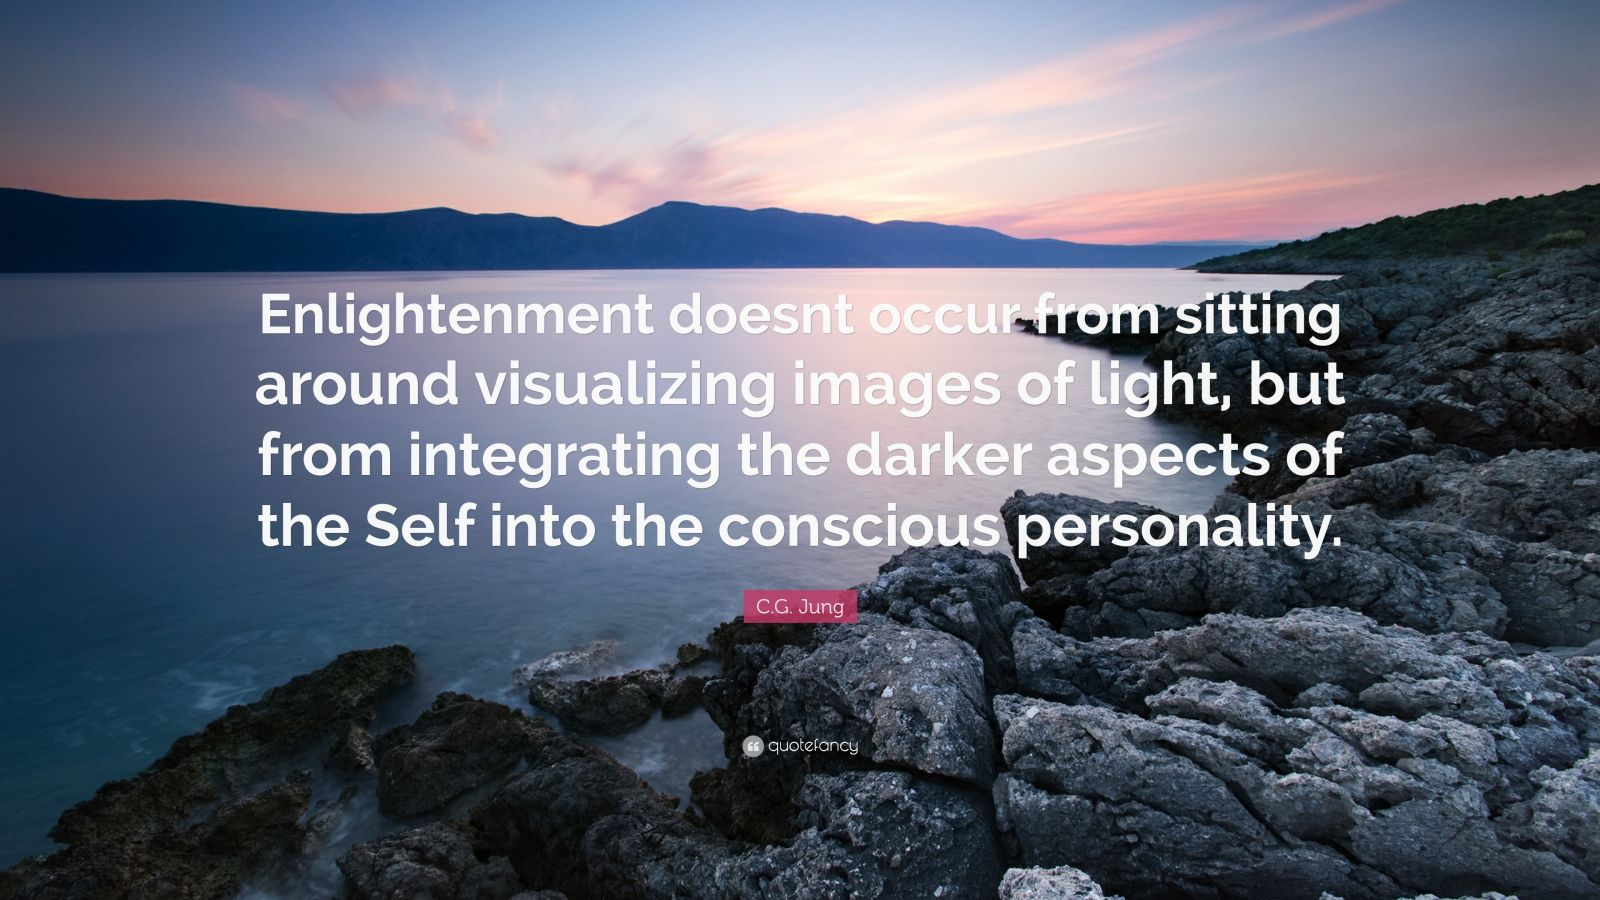 """C.G. Jung Quote: """"Enlightenment doesnt occur from sitting around visualizing images of light, but from integrating the darker aspects of the Self into the conscious personality."""""""